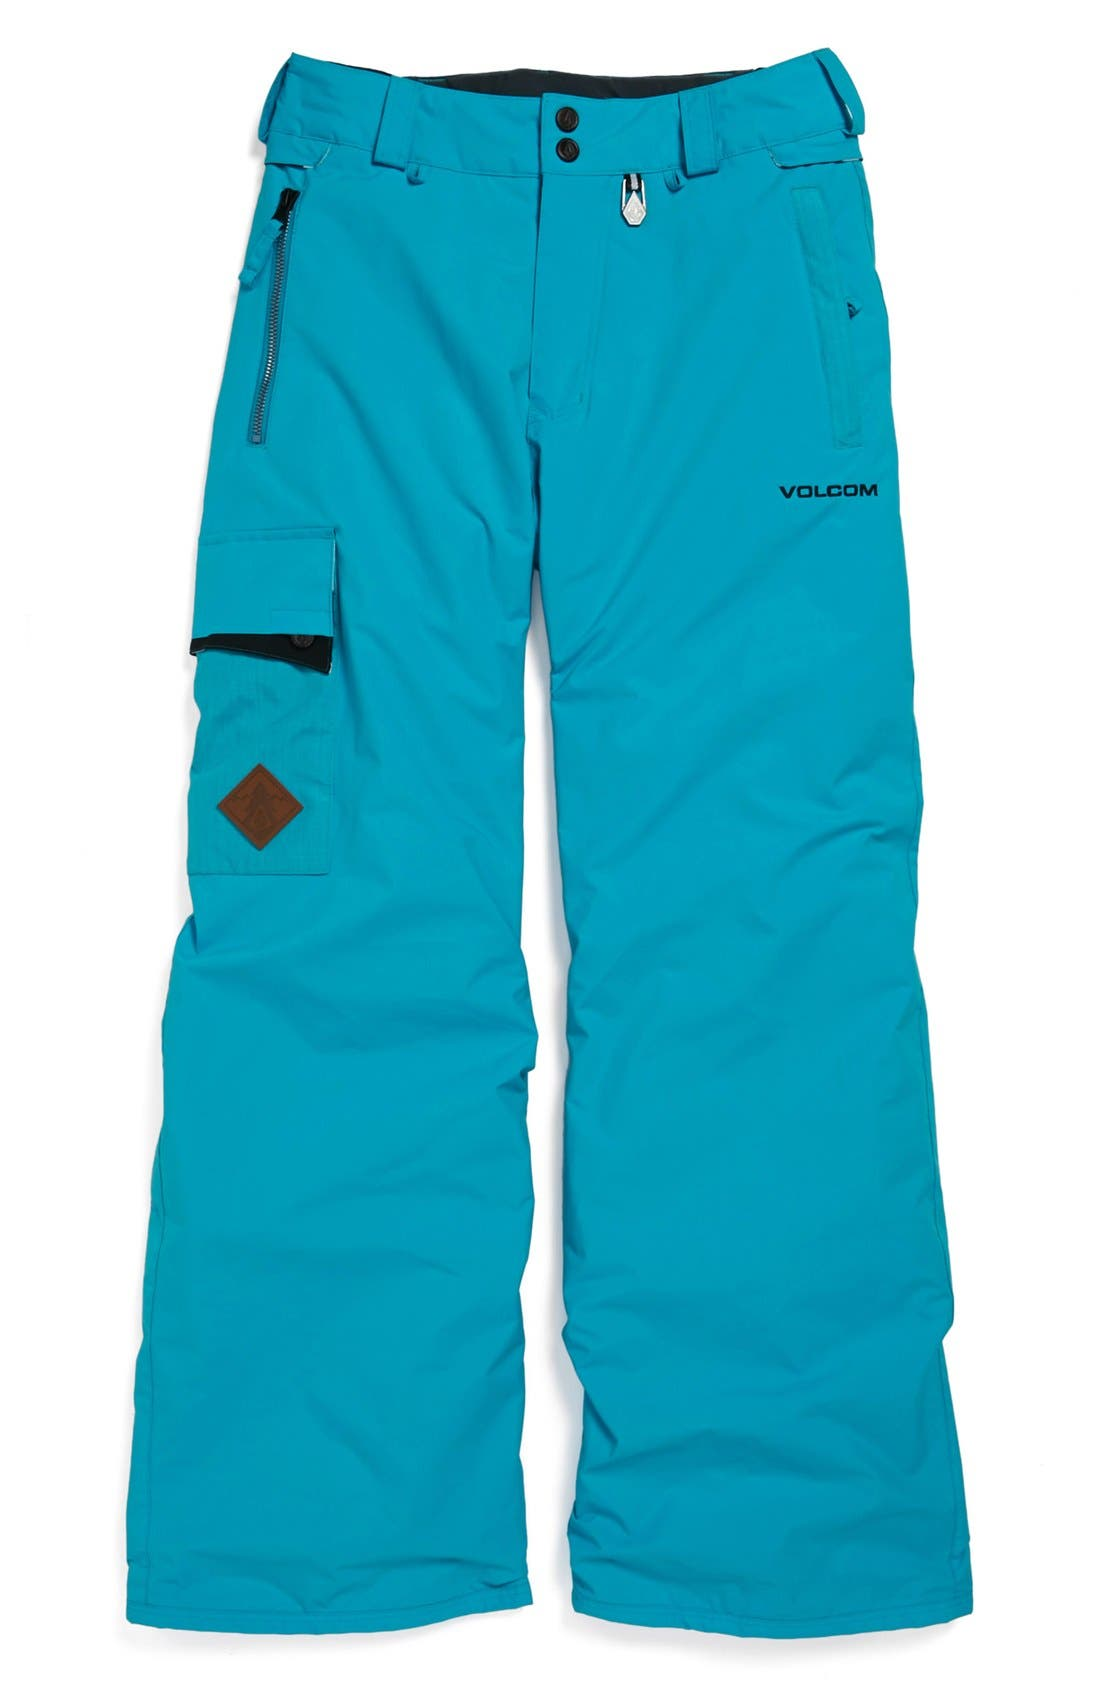 Alternate Image 1 Selected - Volcom 'Foxtail' Insulated Pants (Little Boys & Big Boys)